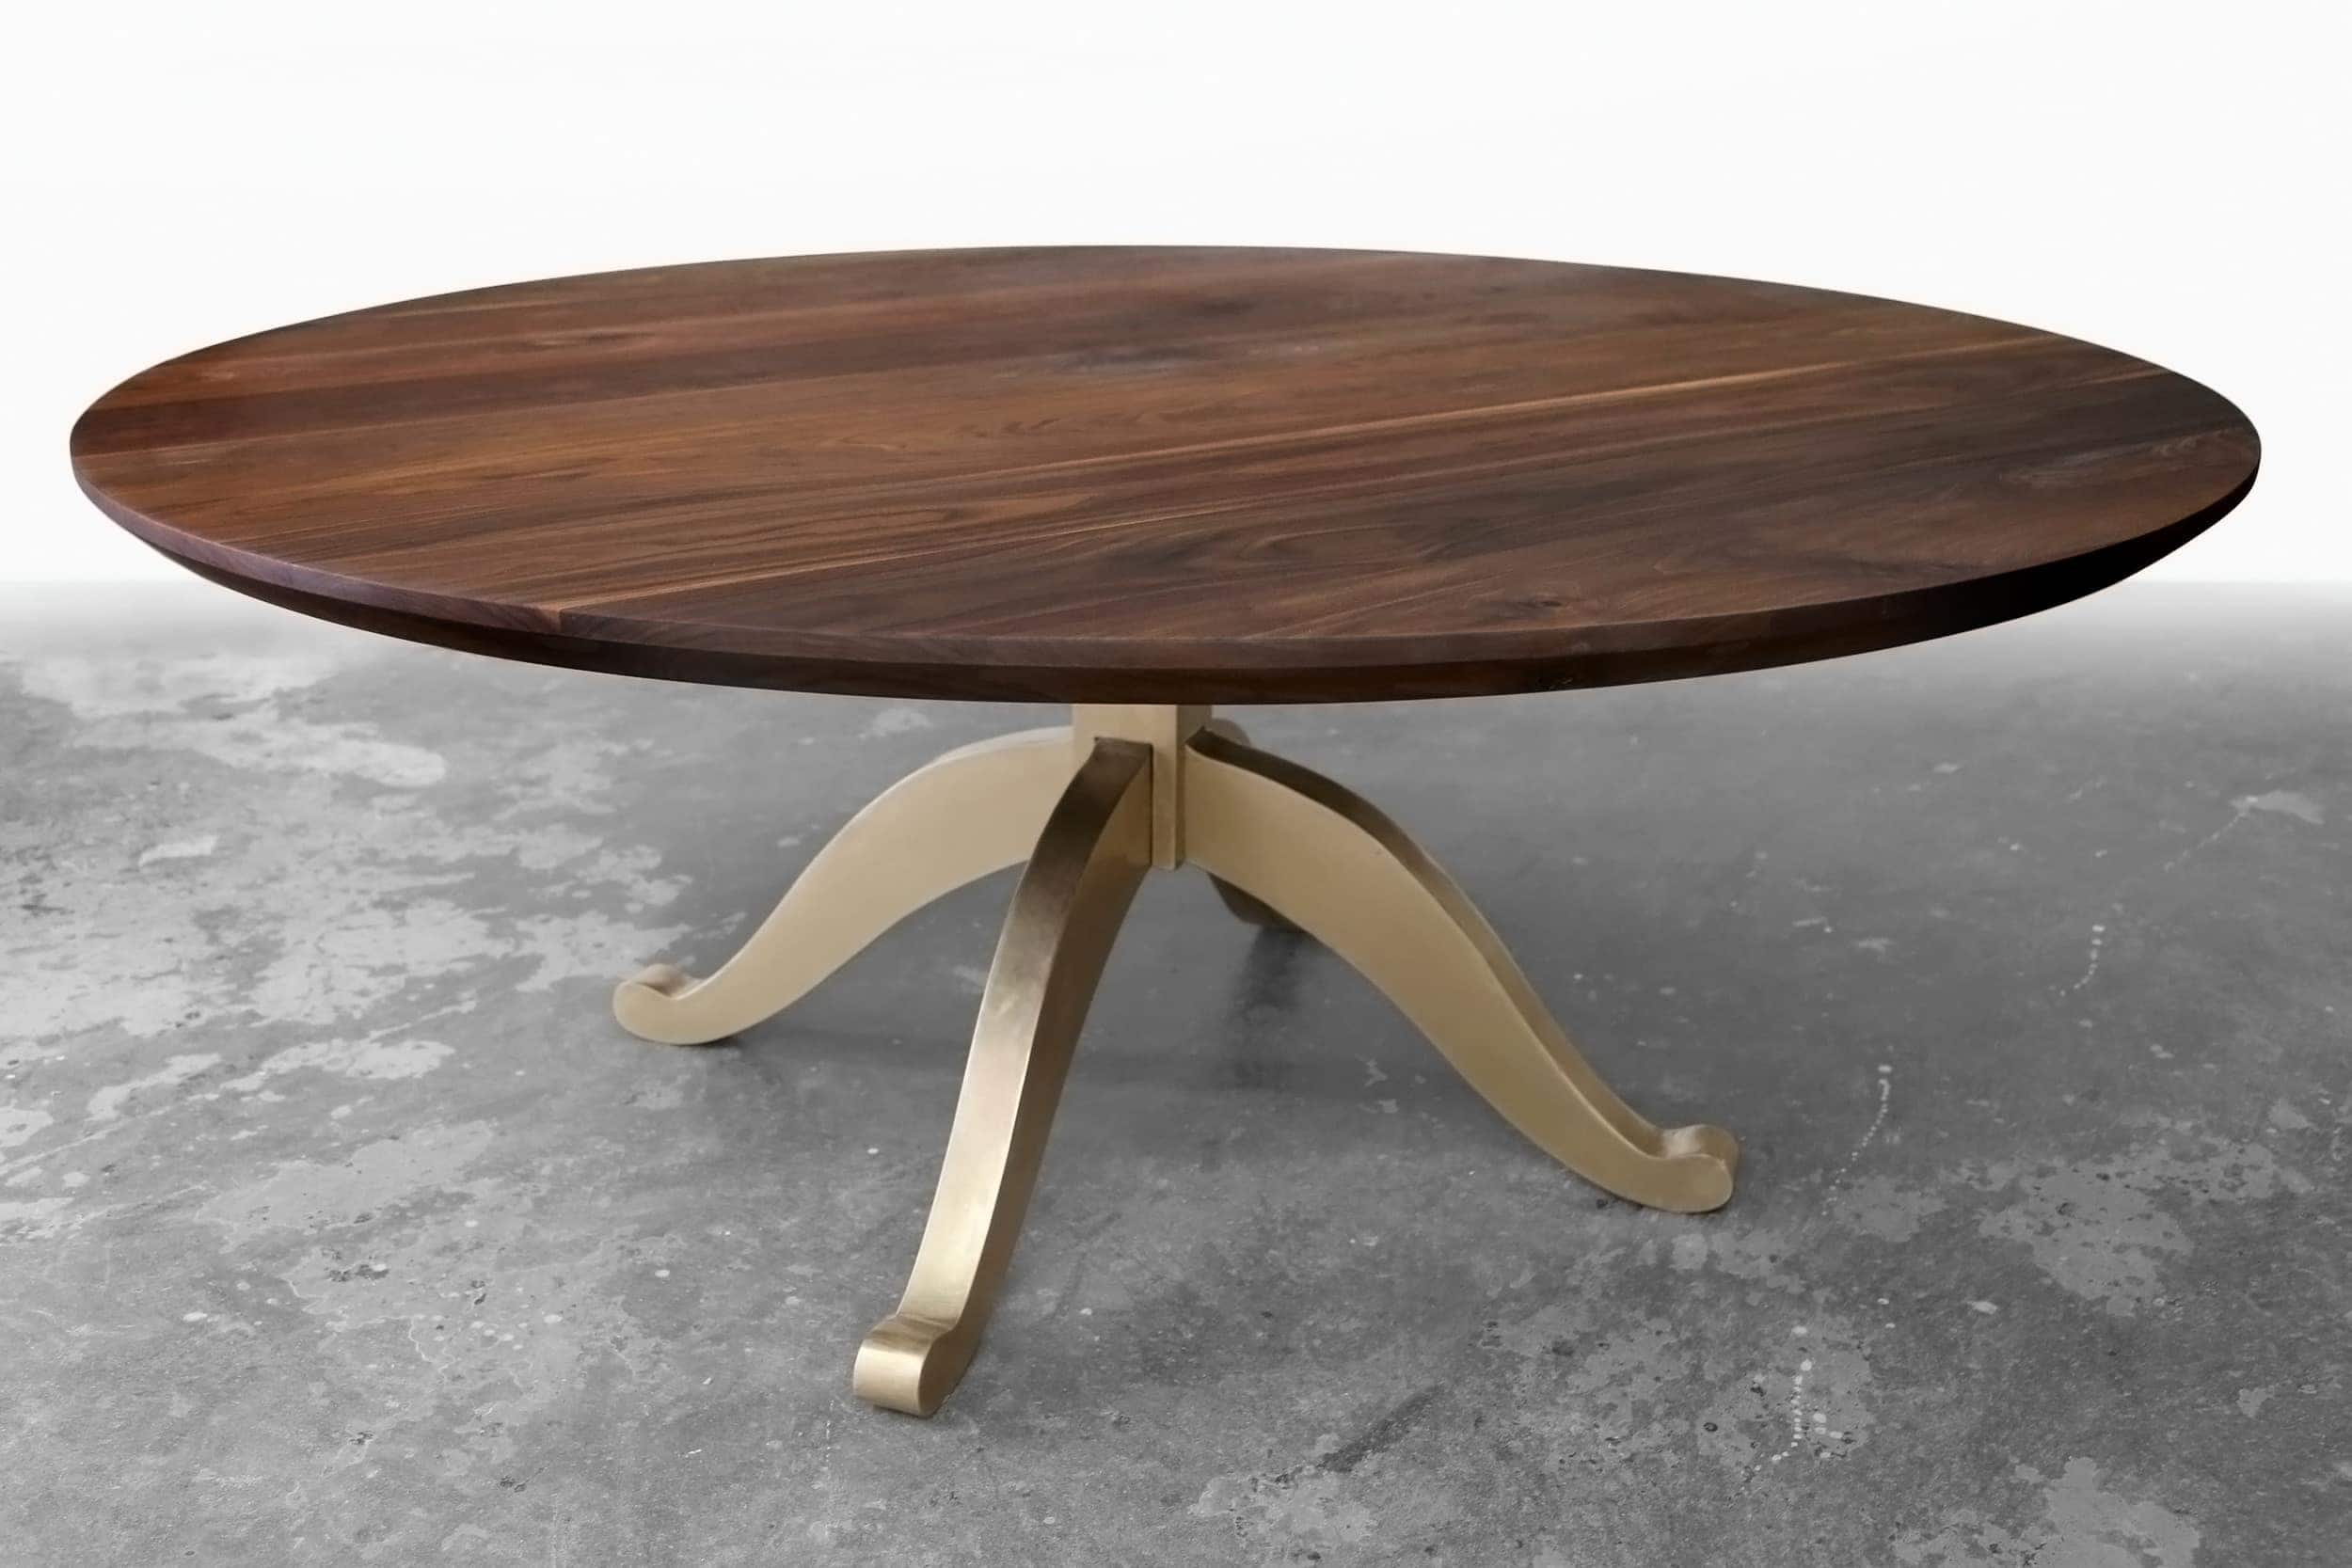 a Sentient round luxury American black walnut contemporary table with brushed brass